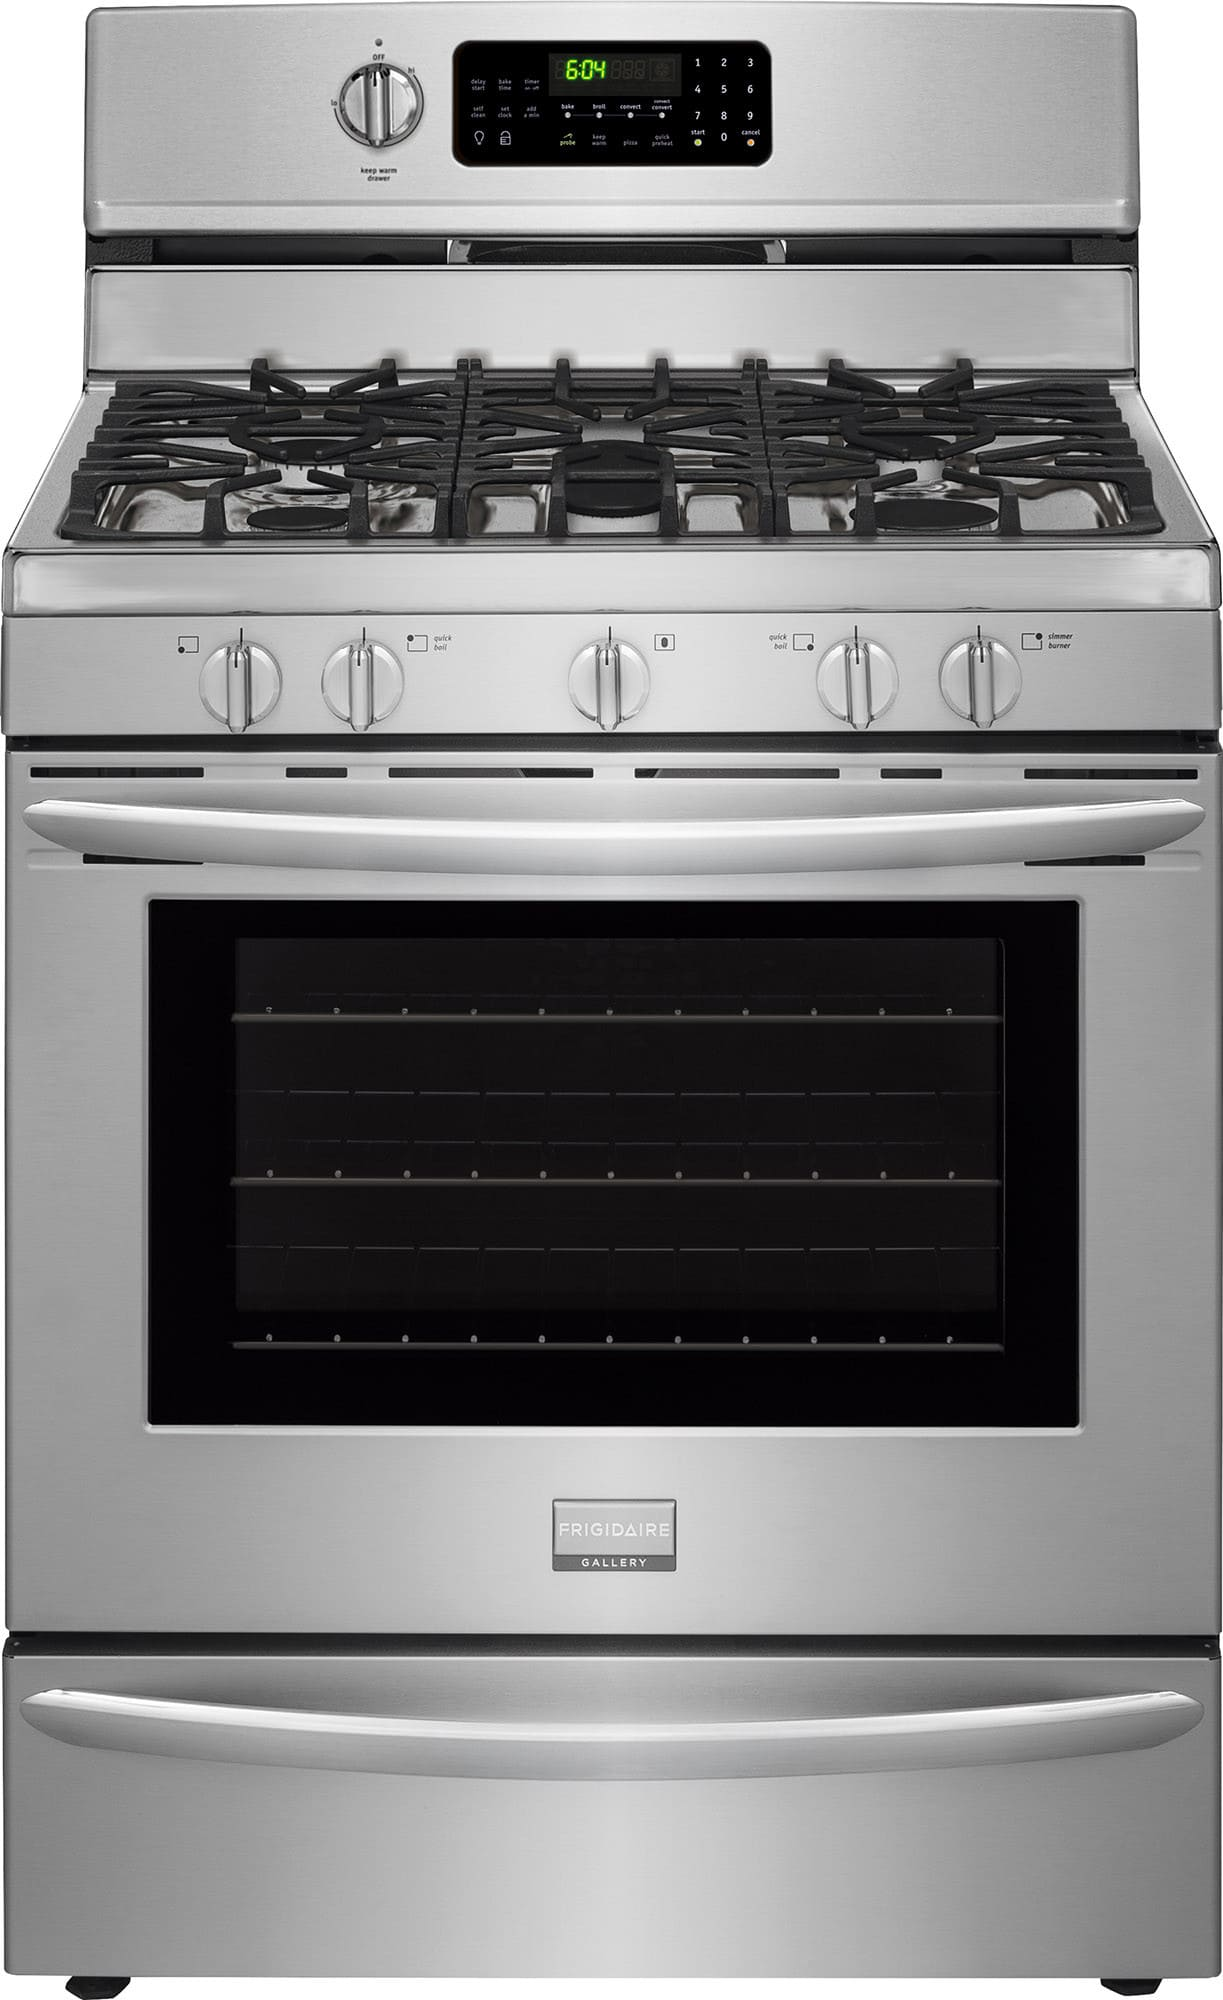 Frigidaire fggf3060sf 30 inch freestanding gas range with convection effortless temperature - Clean gas range keep looking new ...